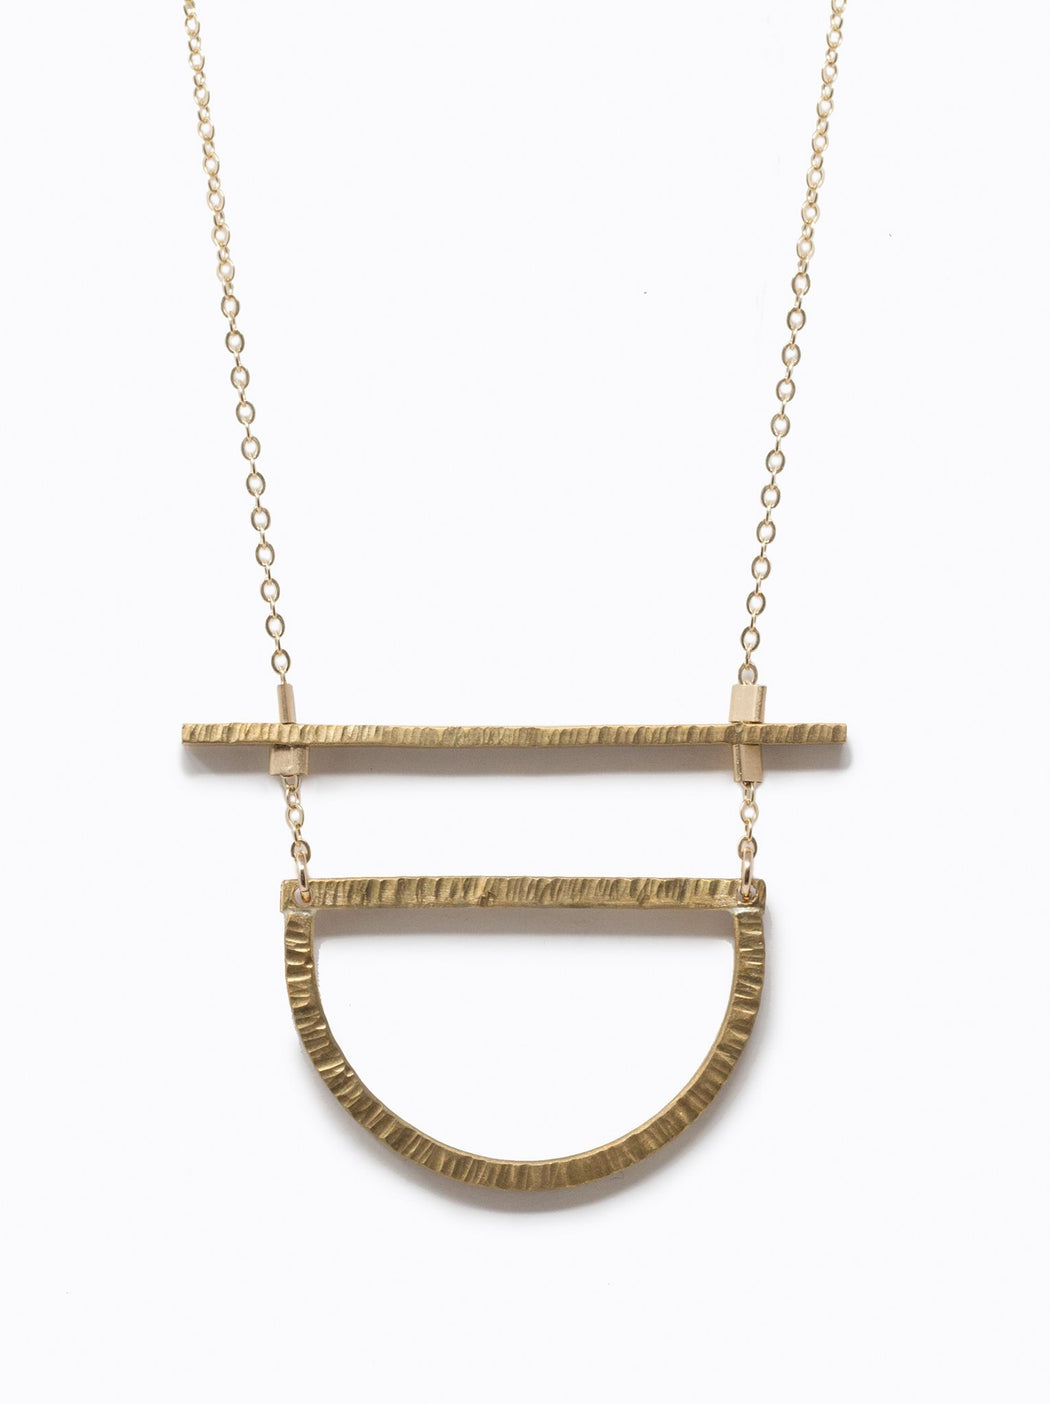 *PRE-ORDER* Manifesto Necklace - Gold/Brass, fashionABLE - Gingerly Witty